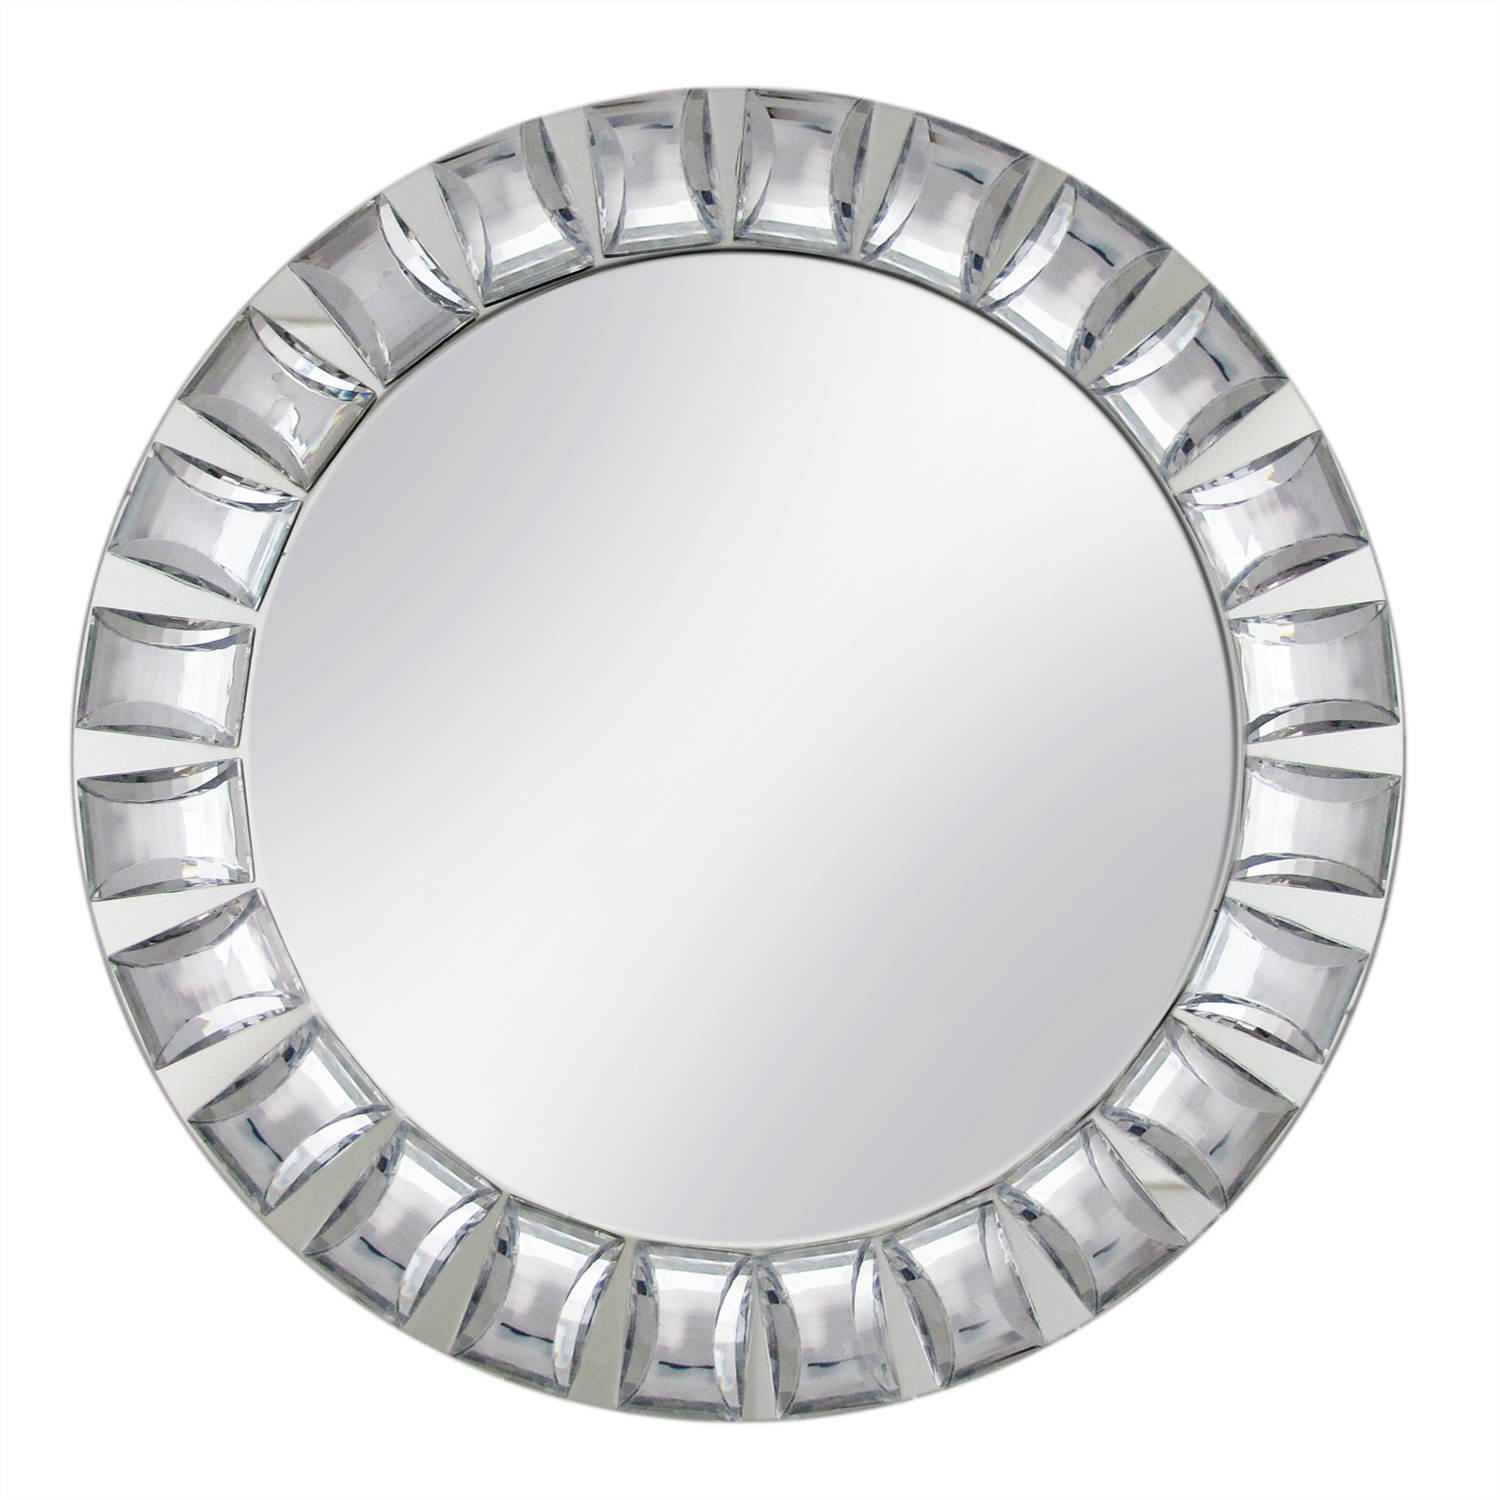 Mirror Charger Plate with Big Beads